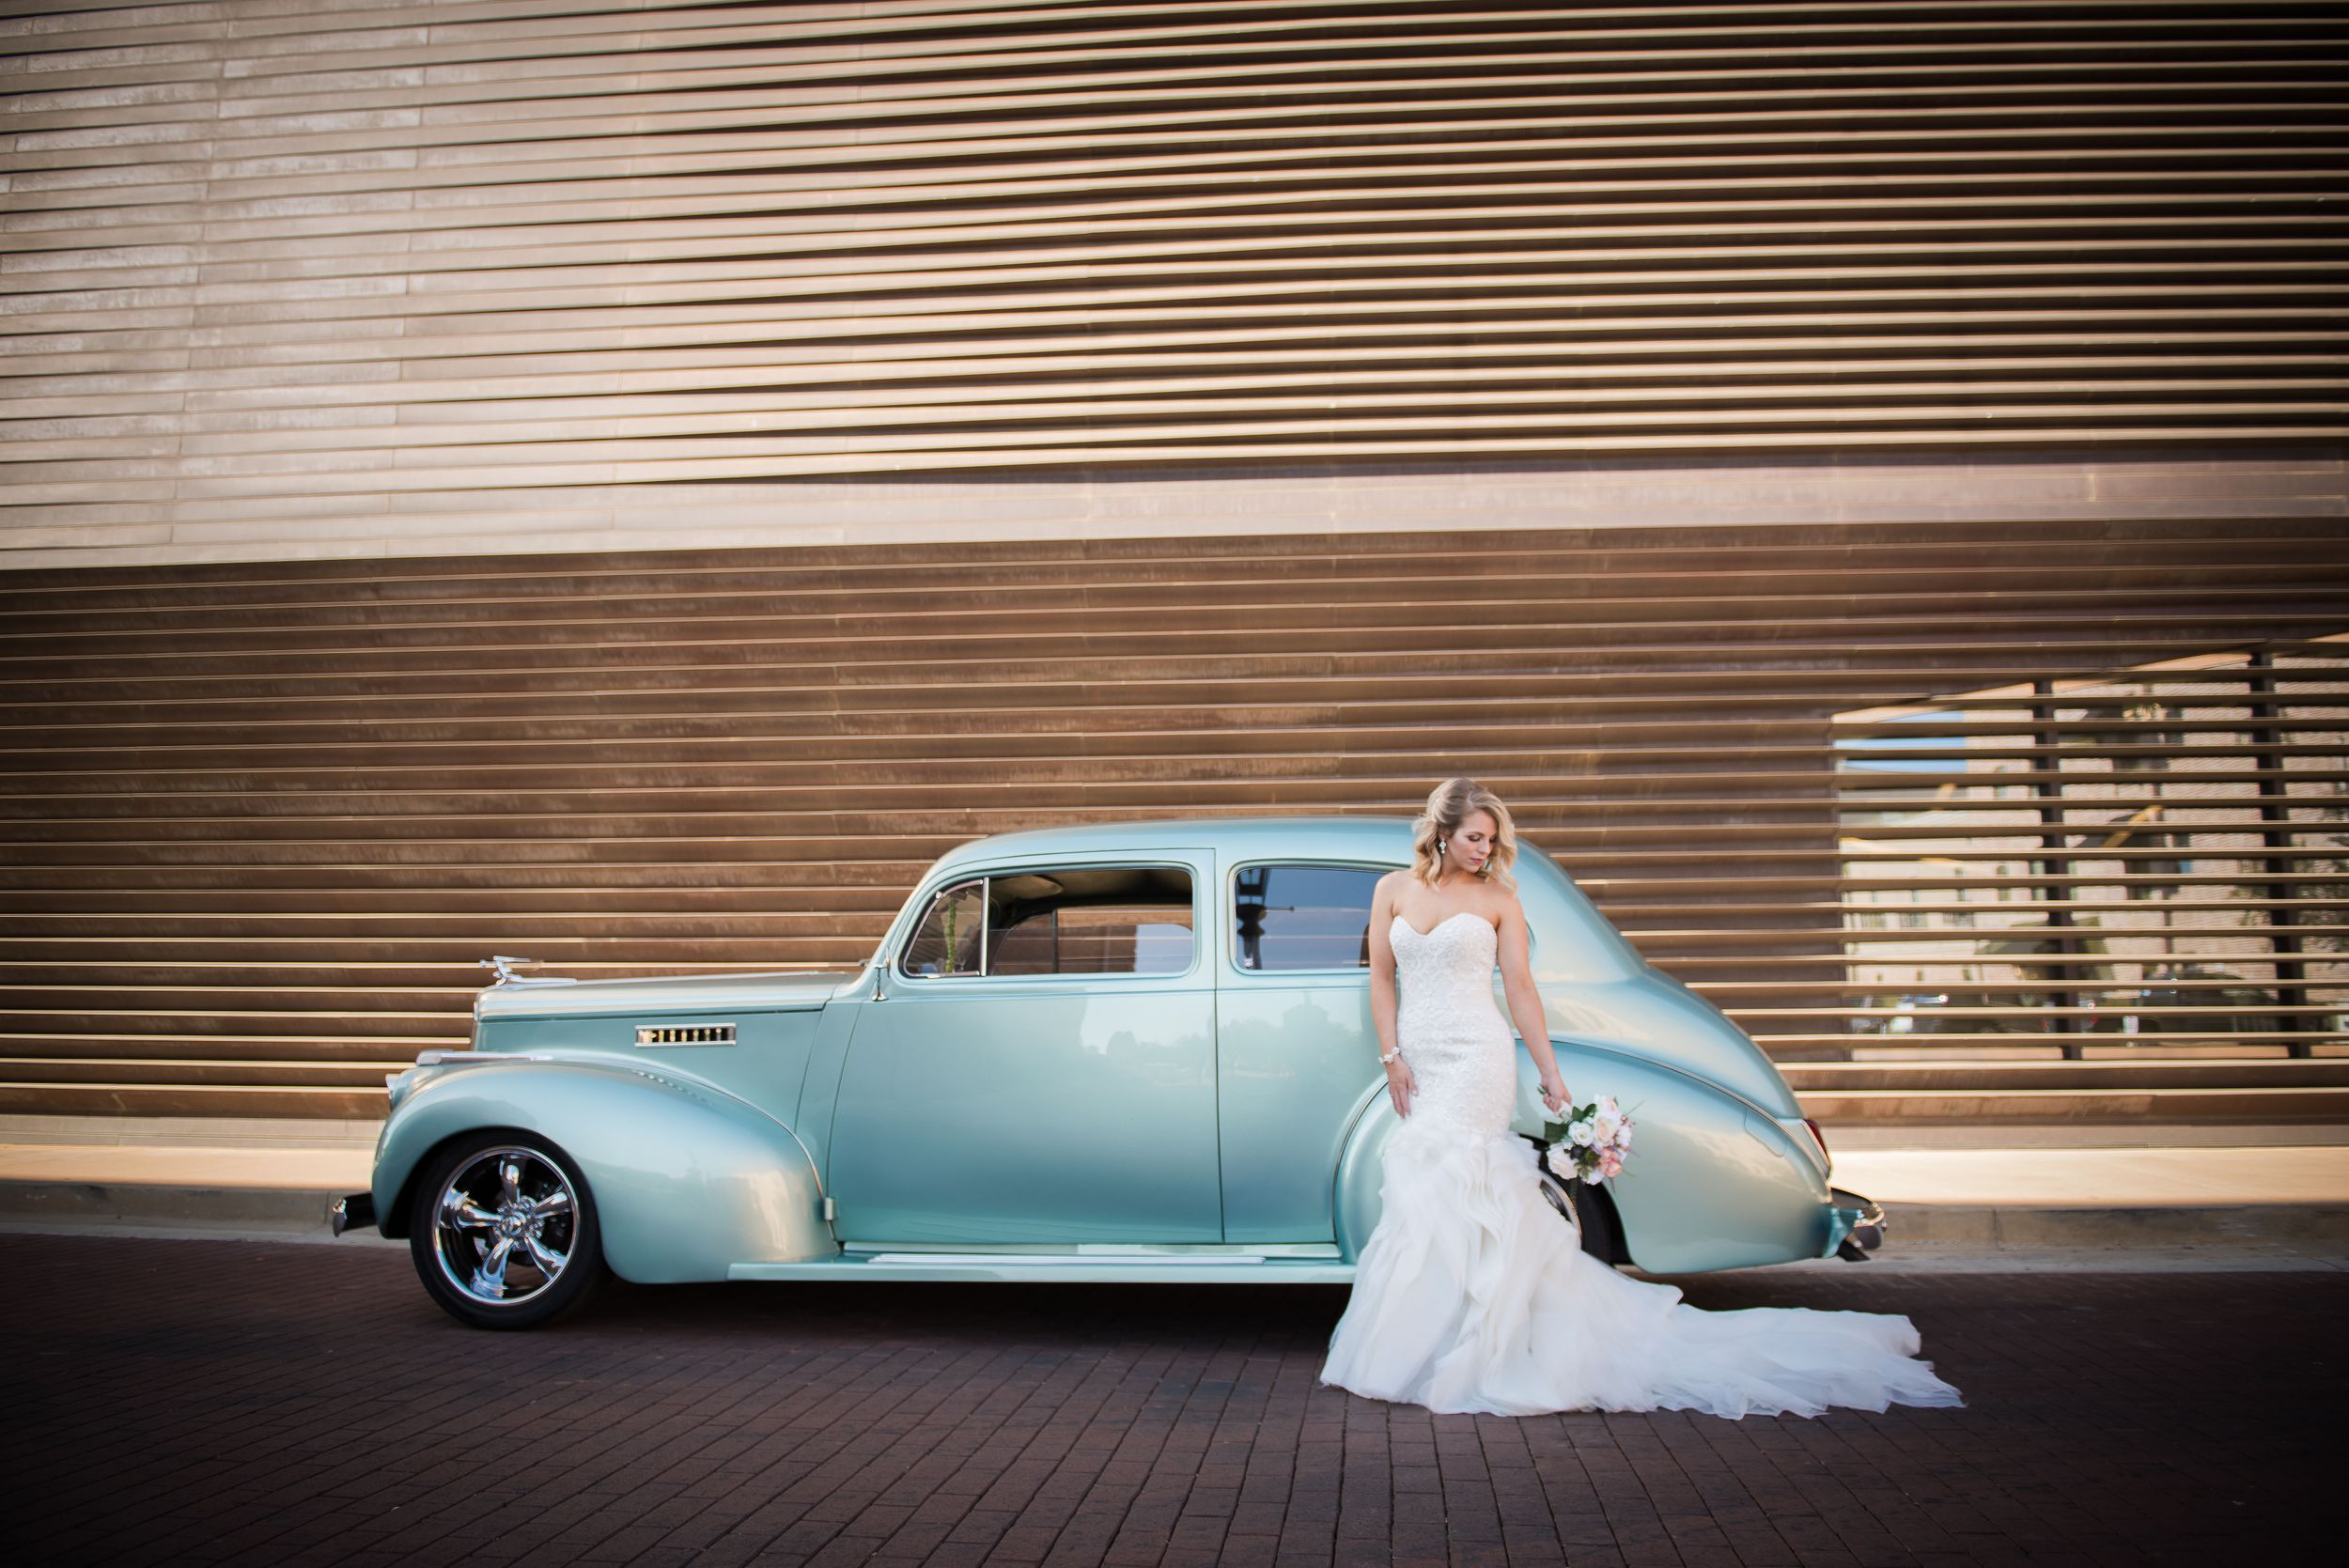 Bride, Bridals, Louisiana Bride, Southern Bride, Old Car, Vintage, Natchitoches, Downtown, White Dress, Blue Car